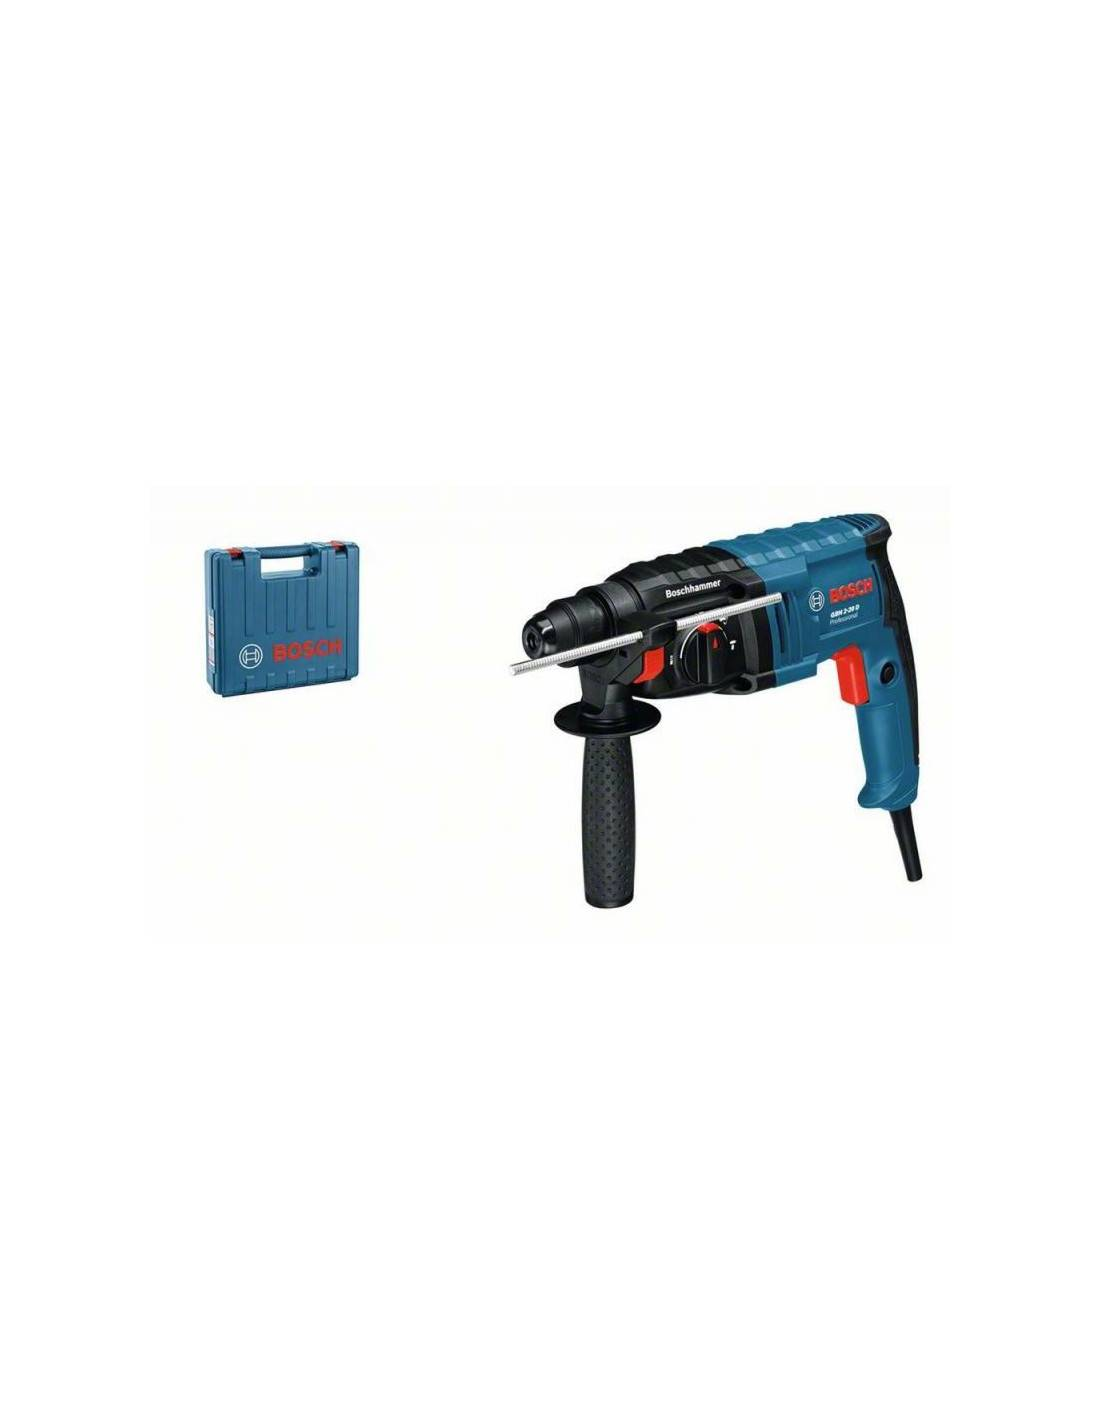 Perforateur SDS plus 650W GBH 2-20 D en coffret standard - BOSCH - 061125A400